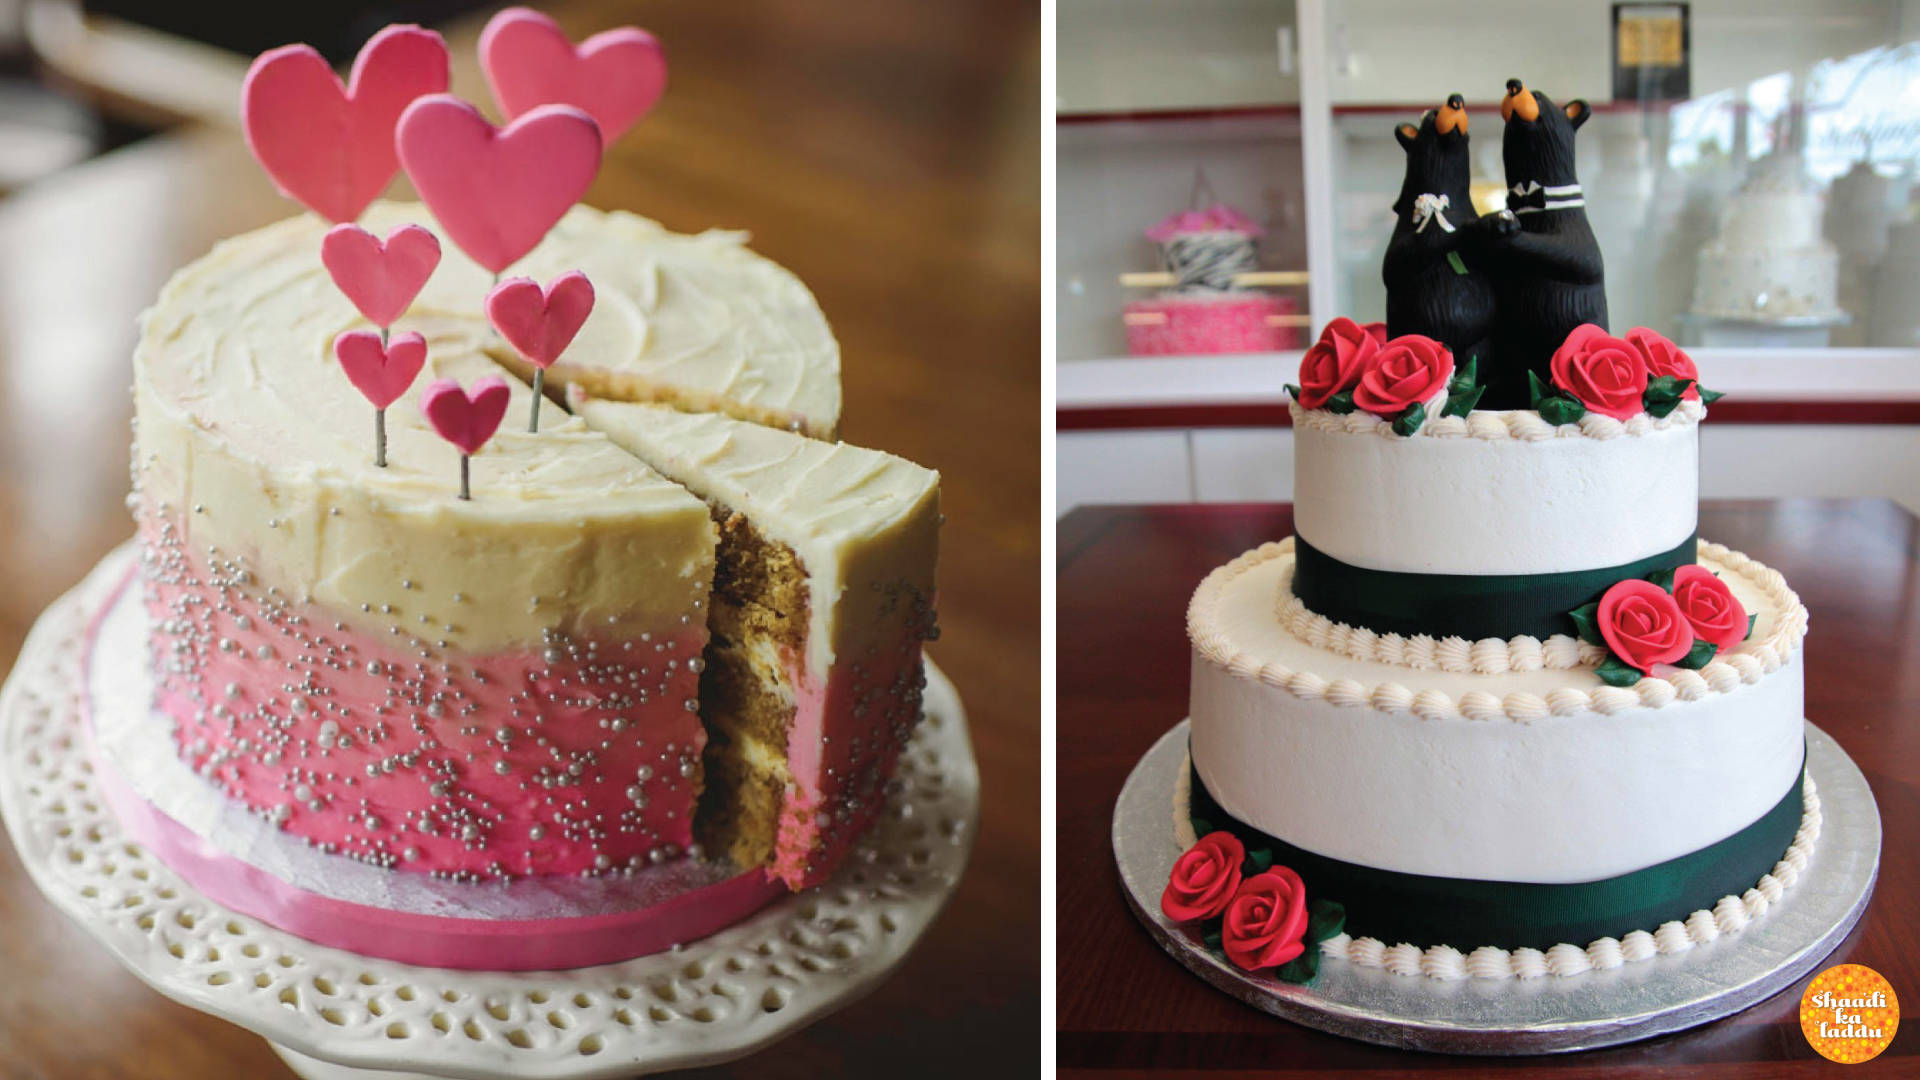 Wedding cakes from All Things Yummy, Delhi